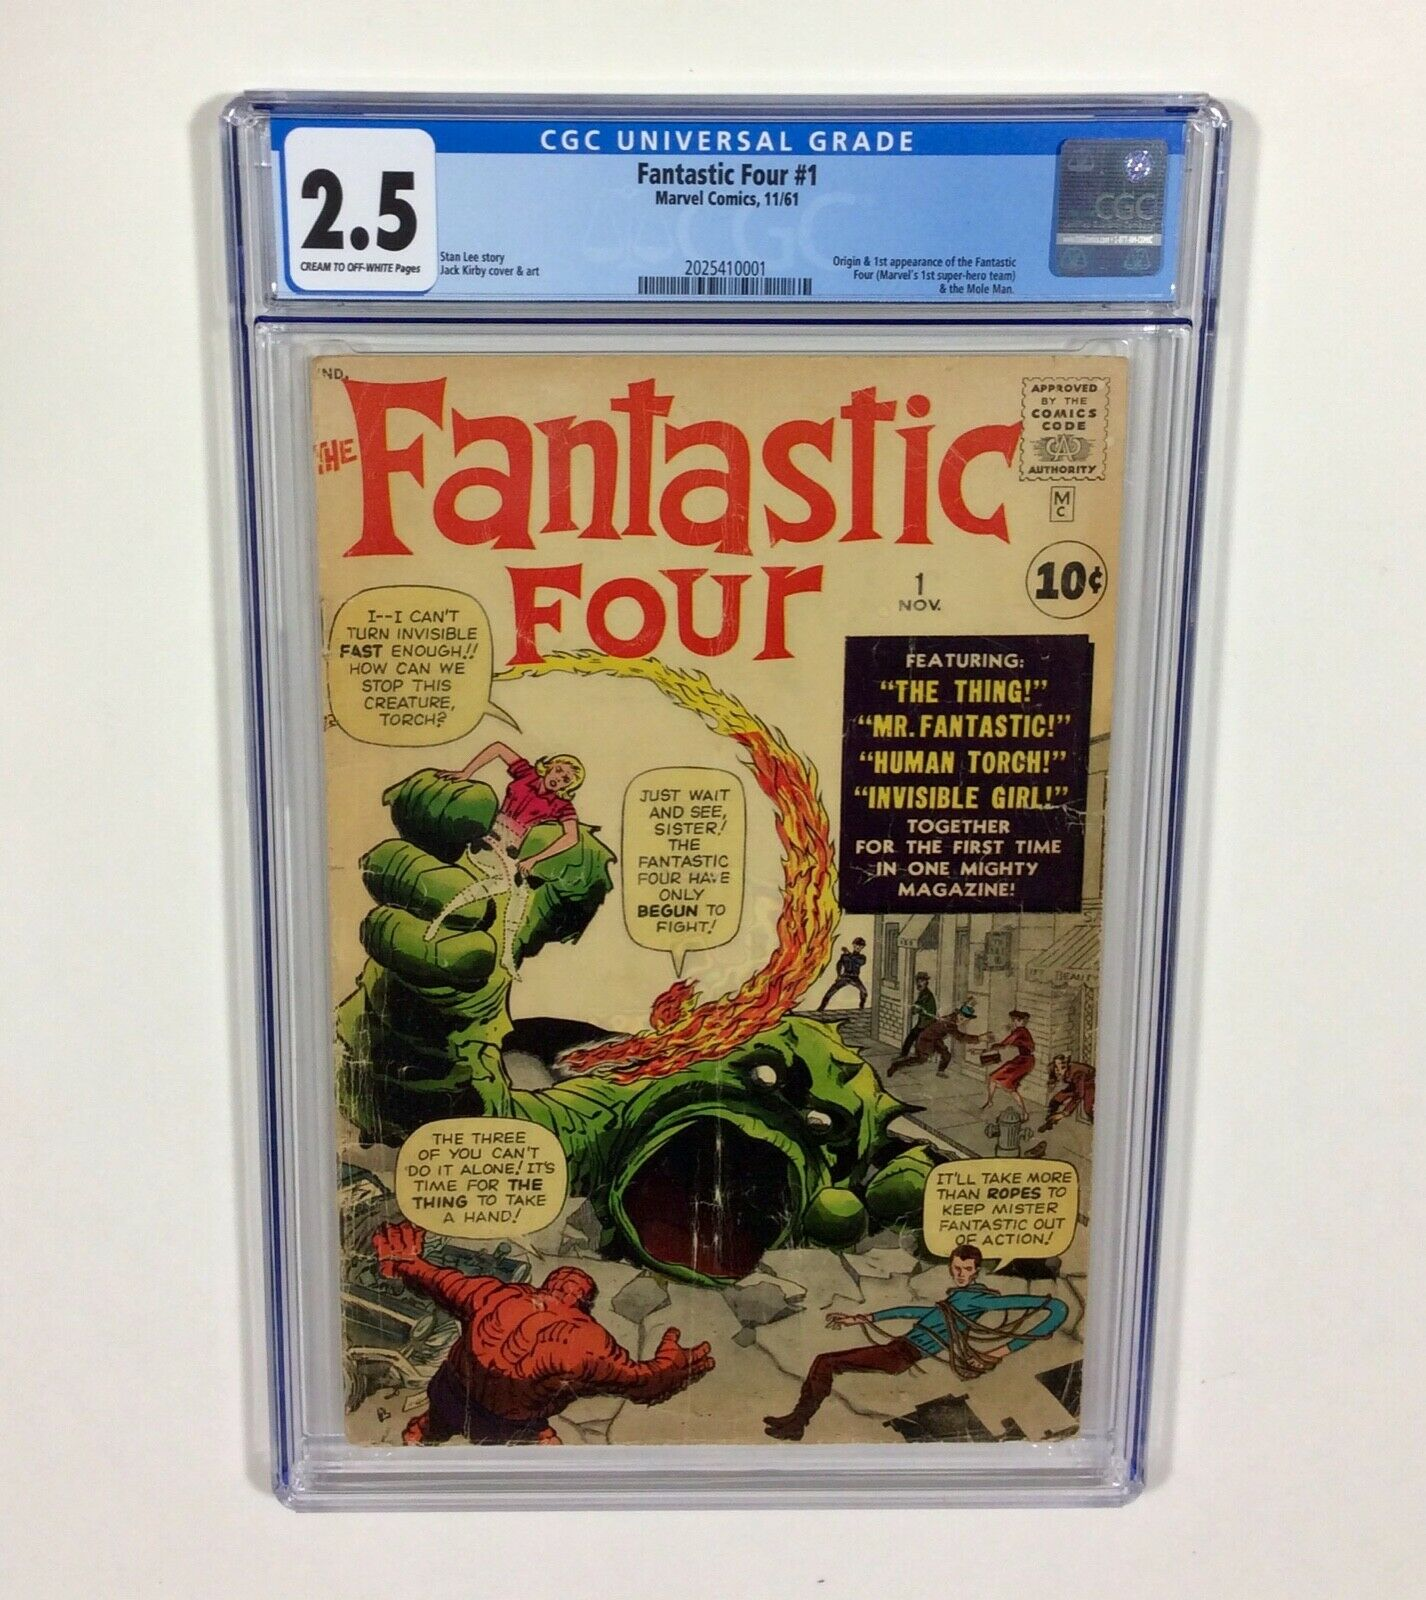 Fantastic Four #1 CGC 2.5 KEY (1sr Fantastic Four & Origin) Nov.1961 Marvel